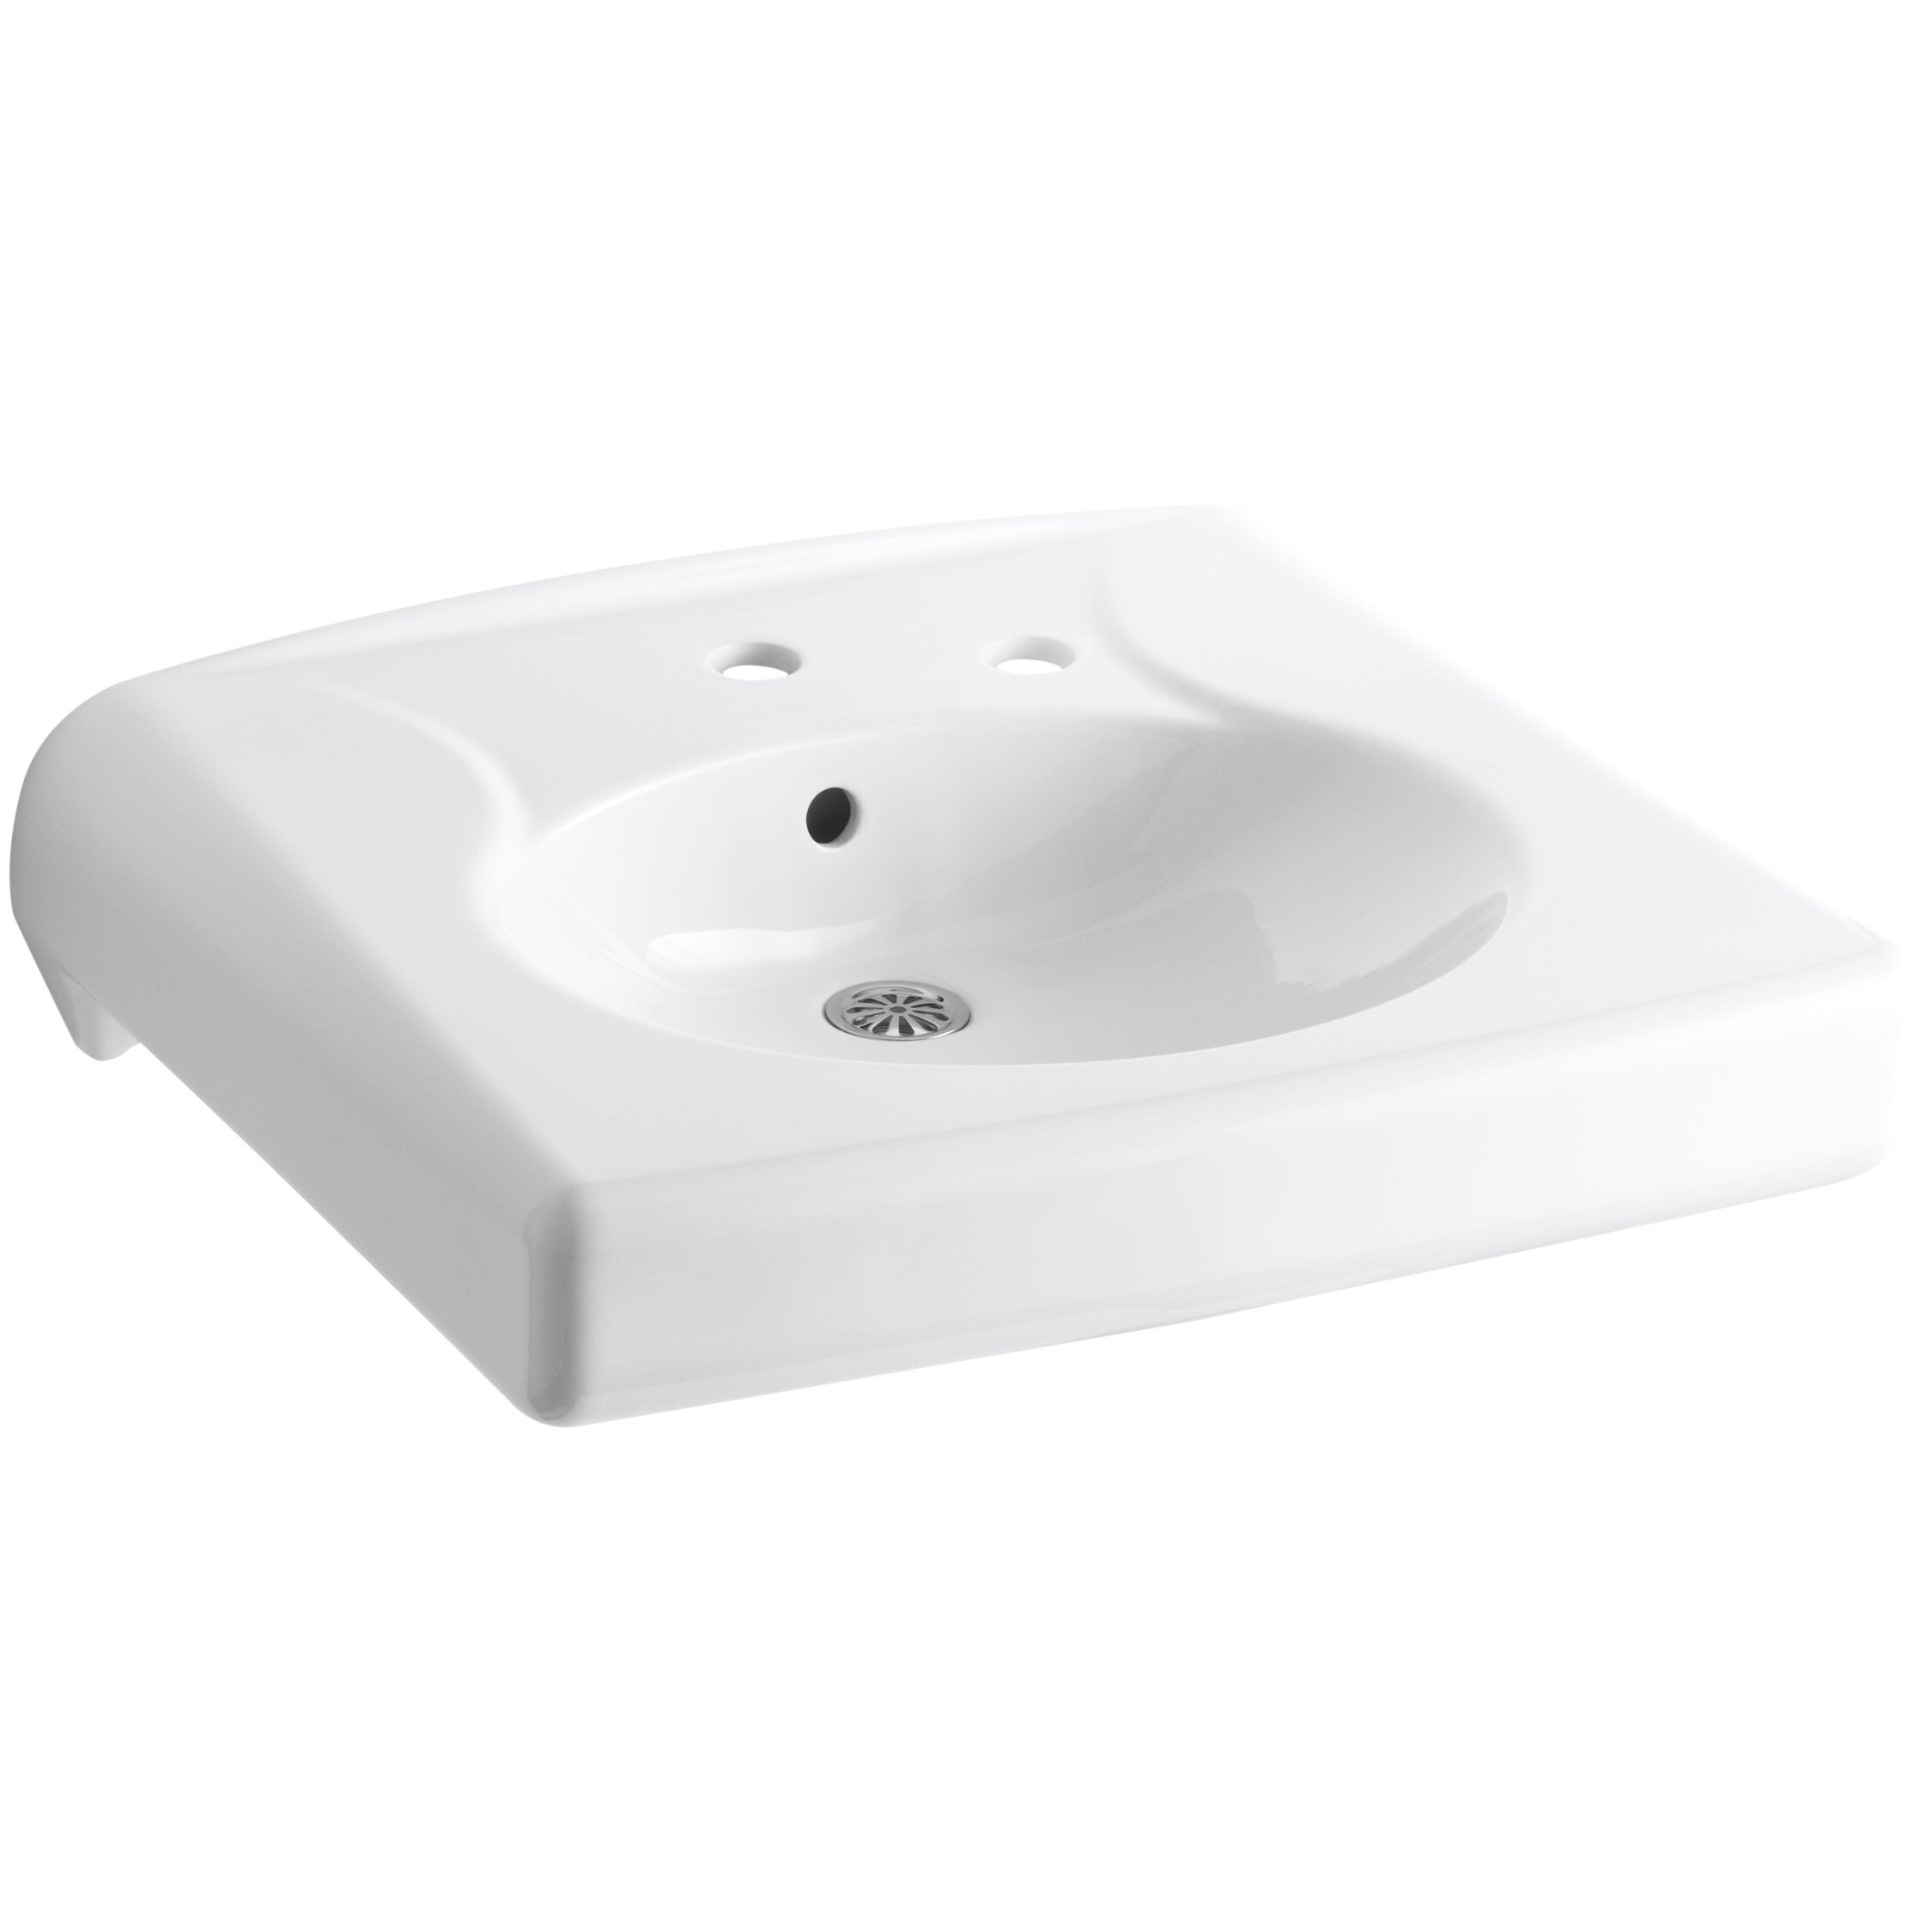 Kohler Brenham Wall Mounted Or Concealed Carrier Arm Mounted Commercial Bathroom Sink With